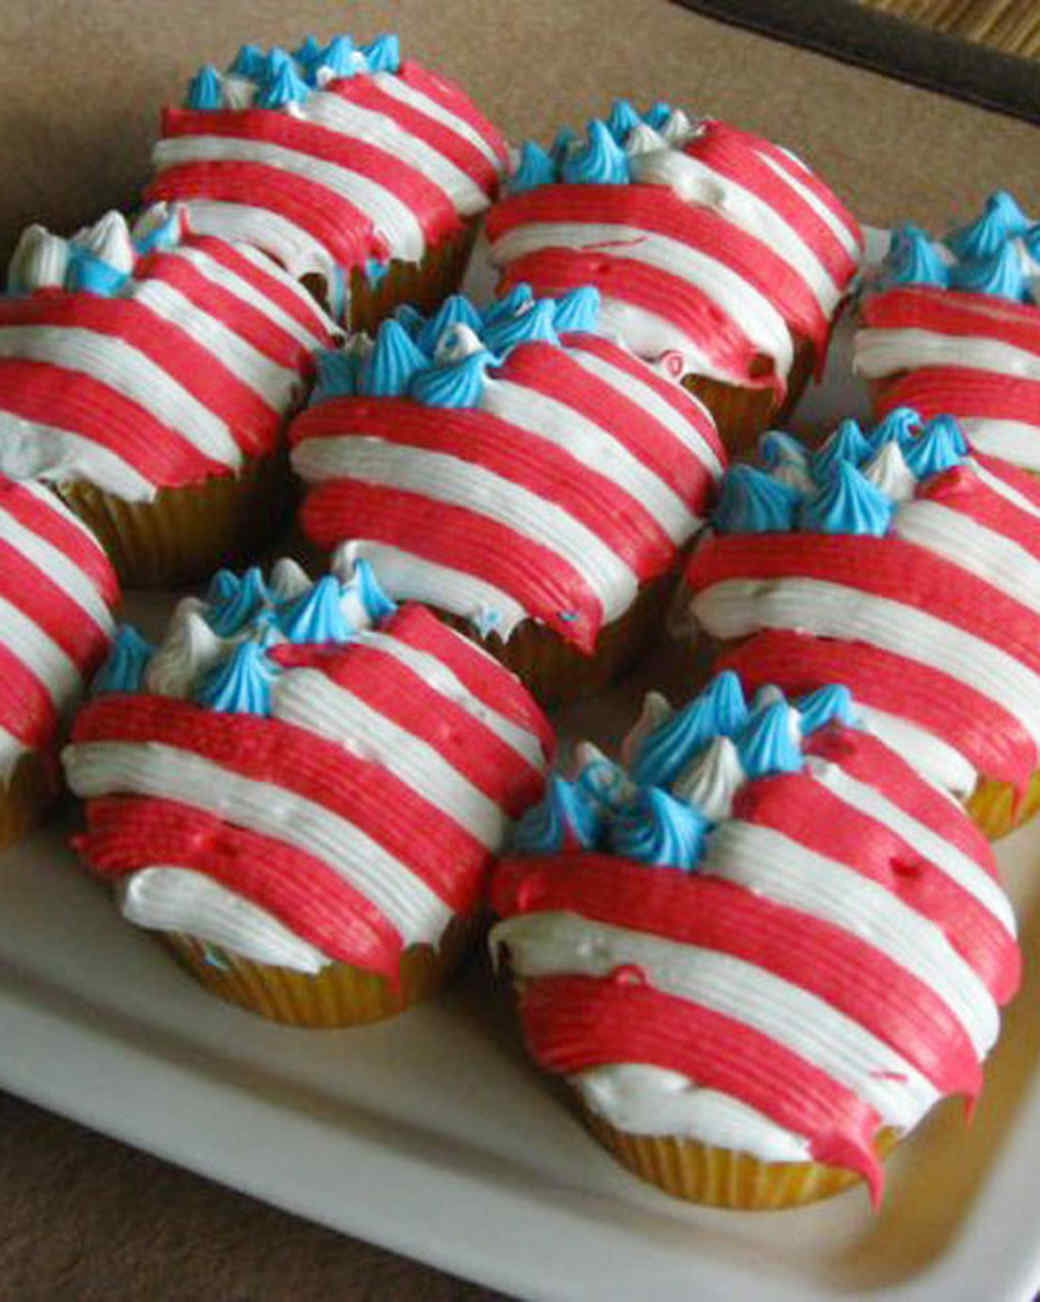 cupcake_contest_0211_american_flag_cupcakes.jpg